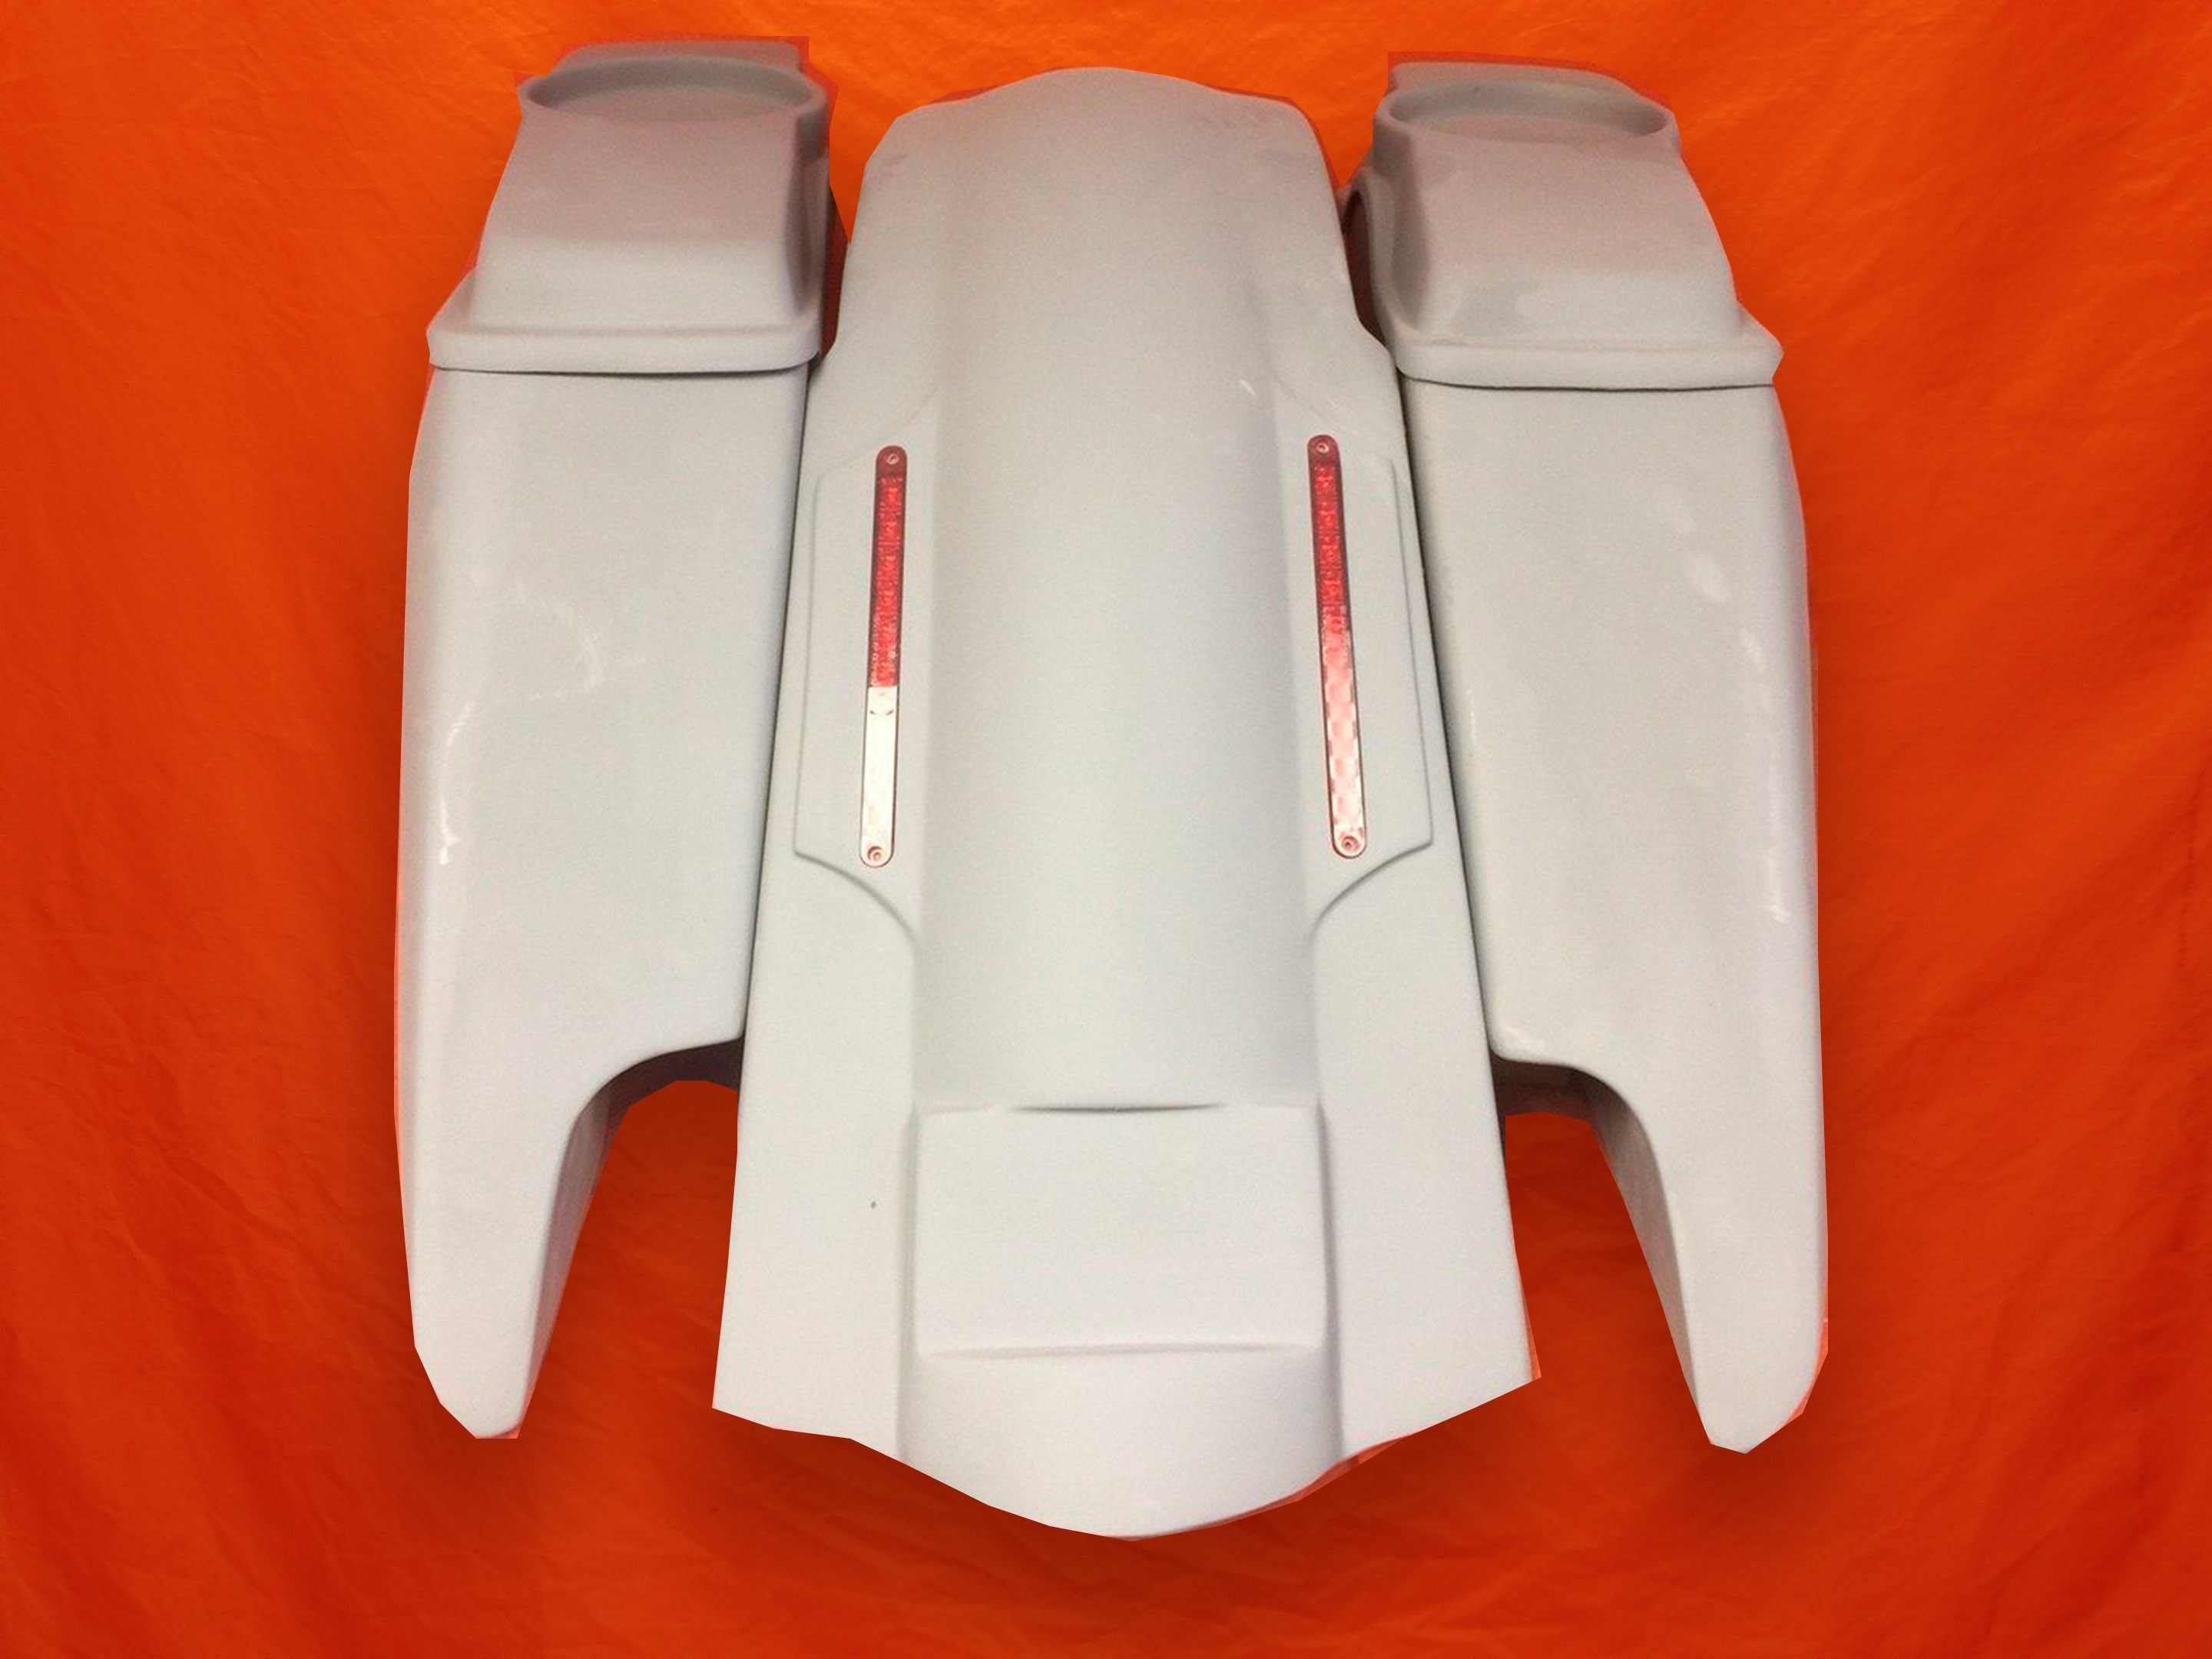 Harley-Davidson-Fifty-Five-Extended-Stretched-Saddlebag-Dual-CutOuts-6-5-inch-Speaker-Lids-LED-Fender-Kit